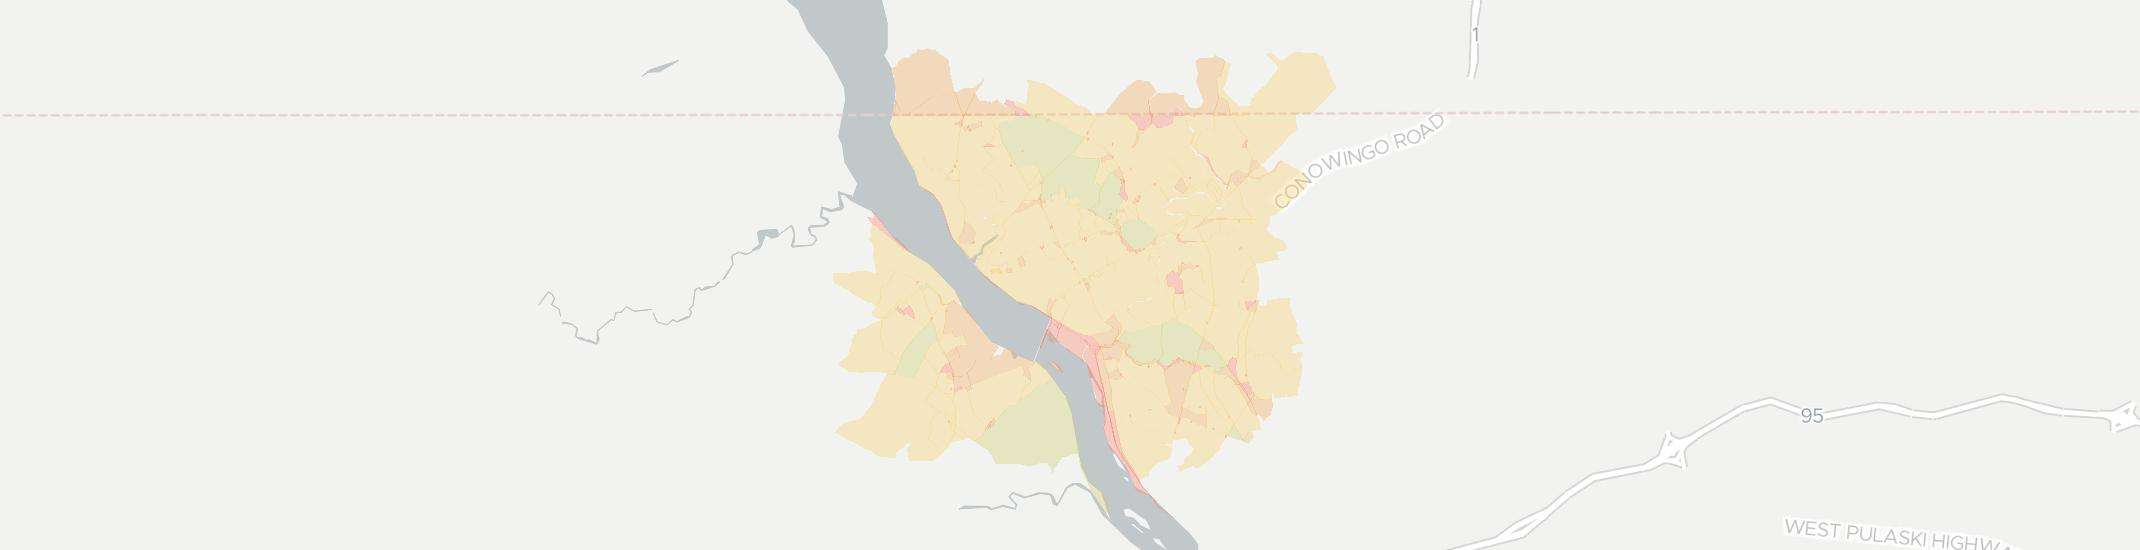 Conowingo Internet Competition Map. Click for interactive map.